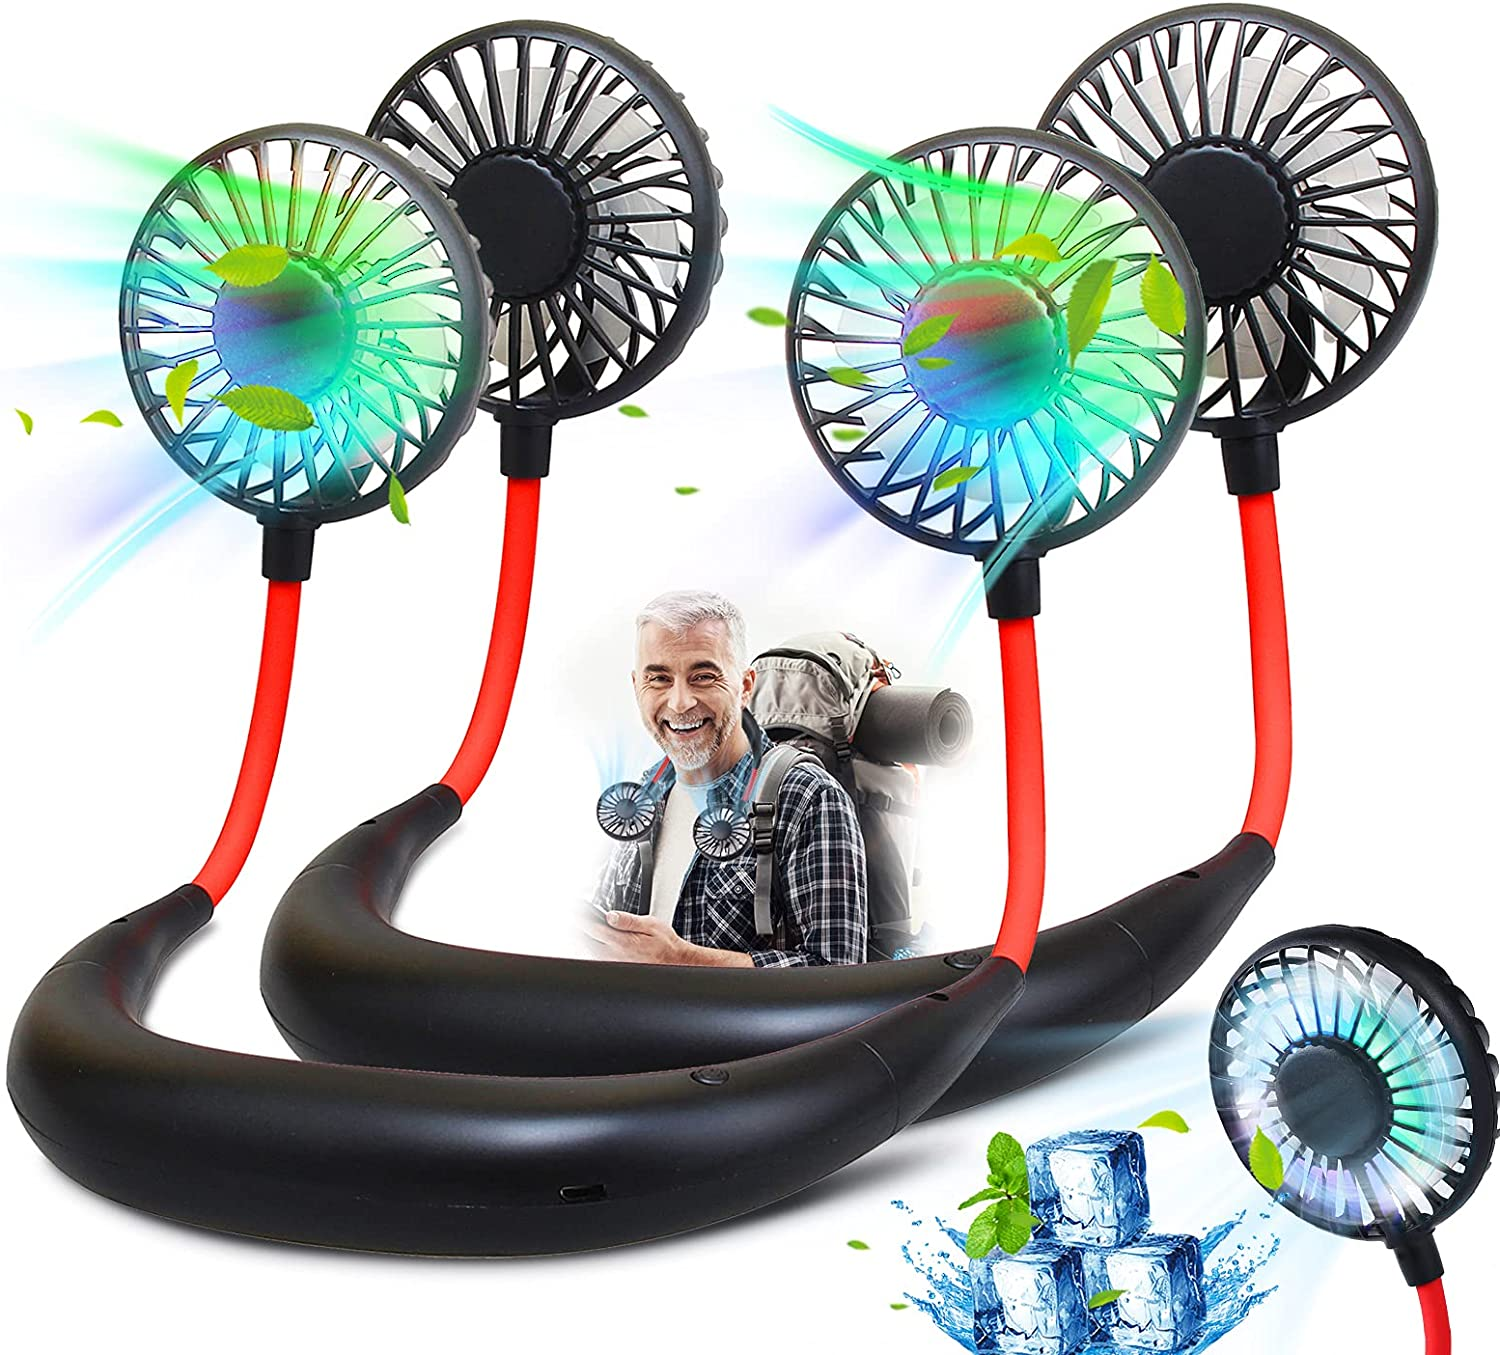 2Pack Portable Neck Fan, Wearable Personal Fan, Rechargeable Hanging Neck Fan for Men,Women, Handsfree Headphone Design for Camping,Travel,Office,Home,Outdoor, USB Powered, 3 Speeds (Black)